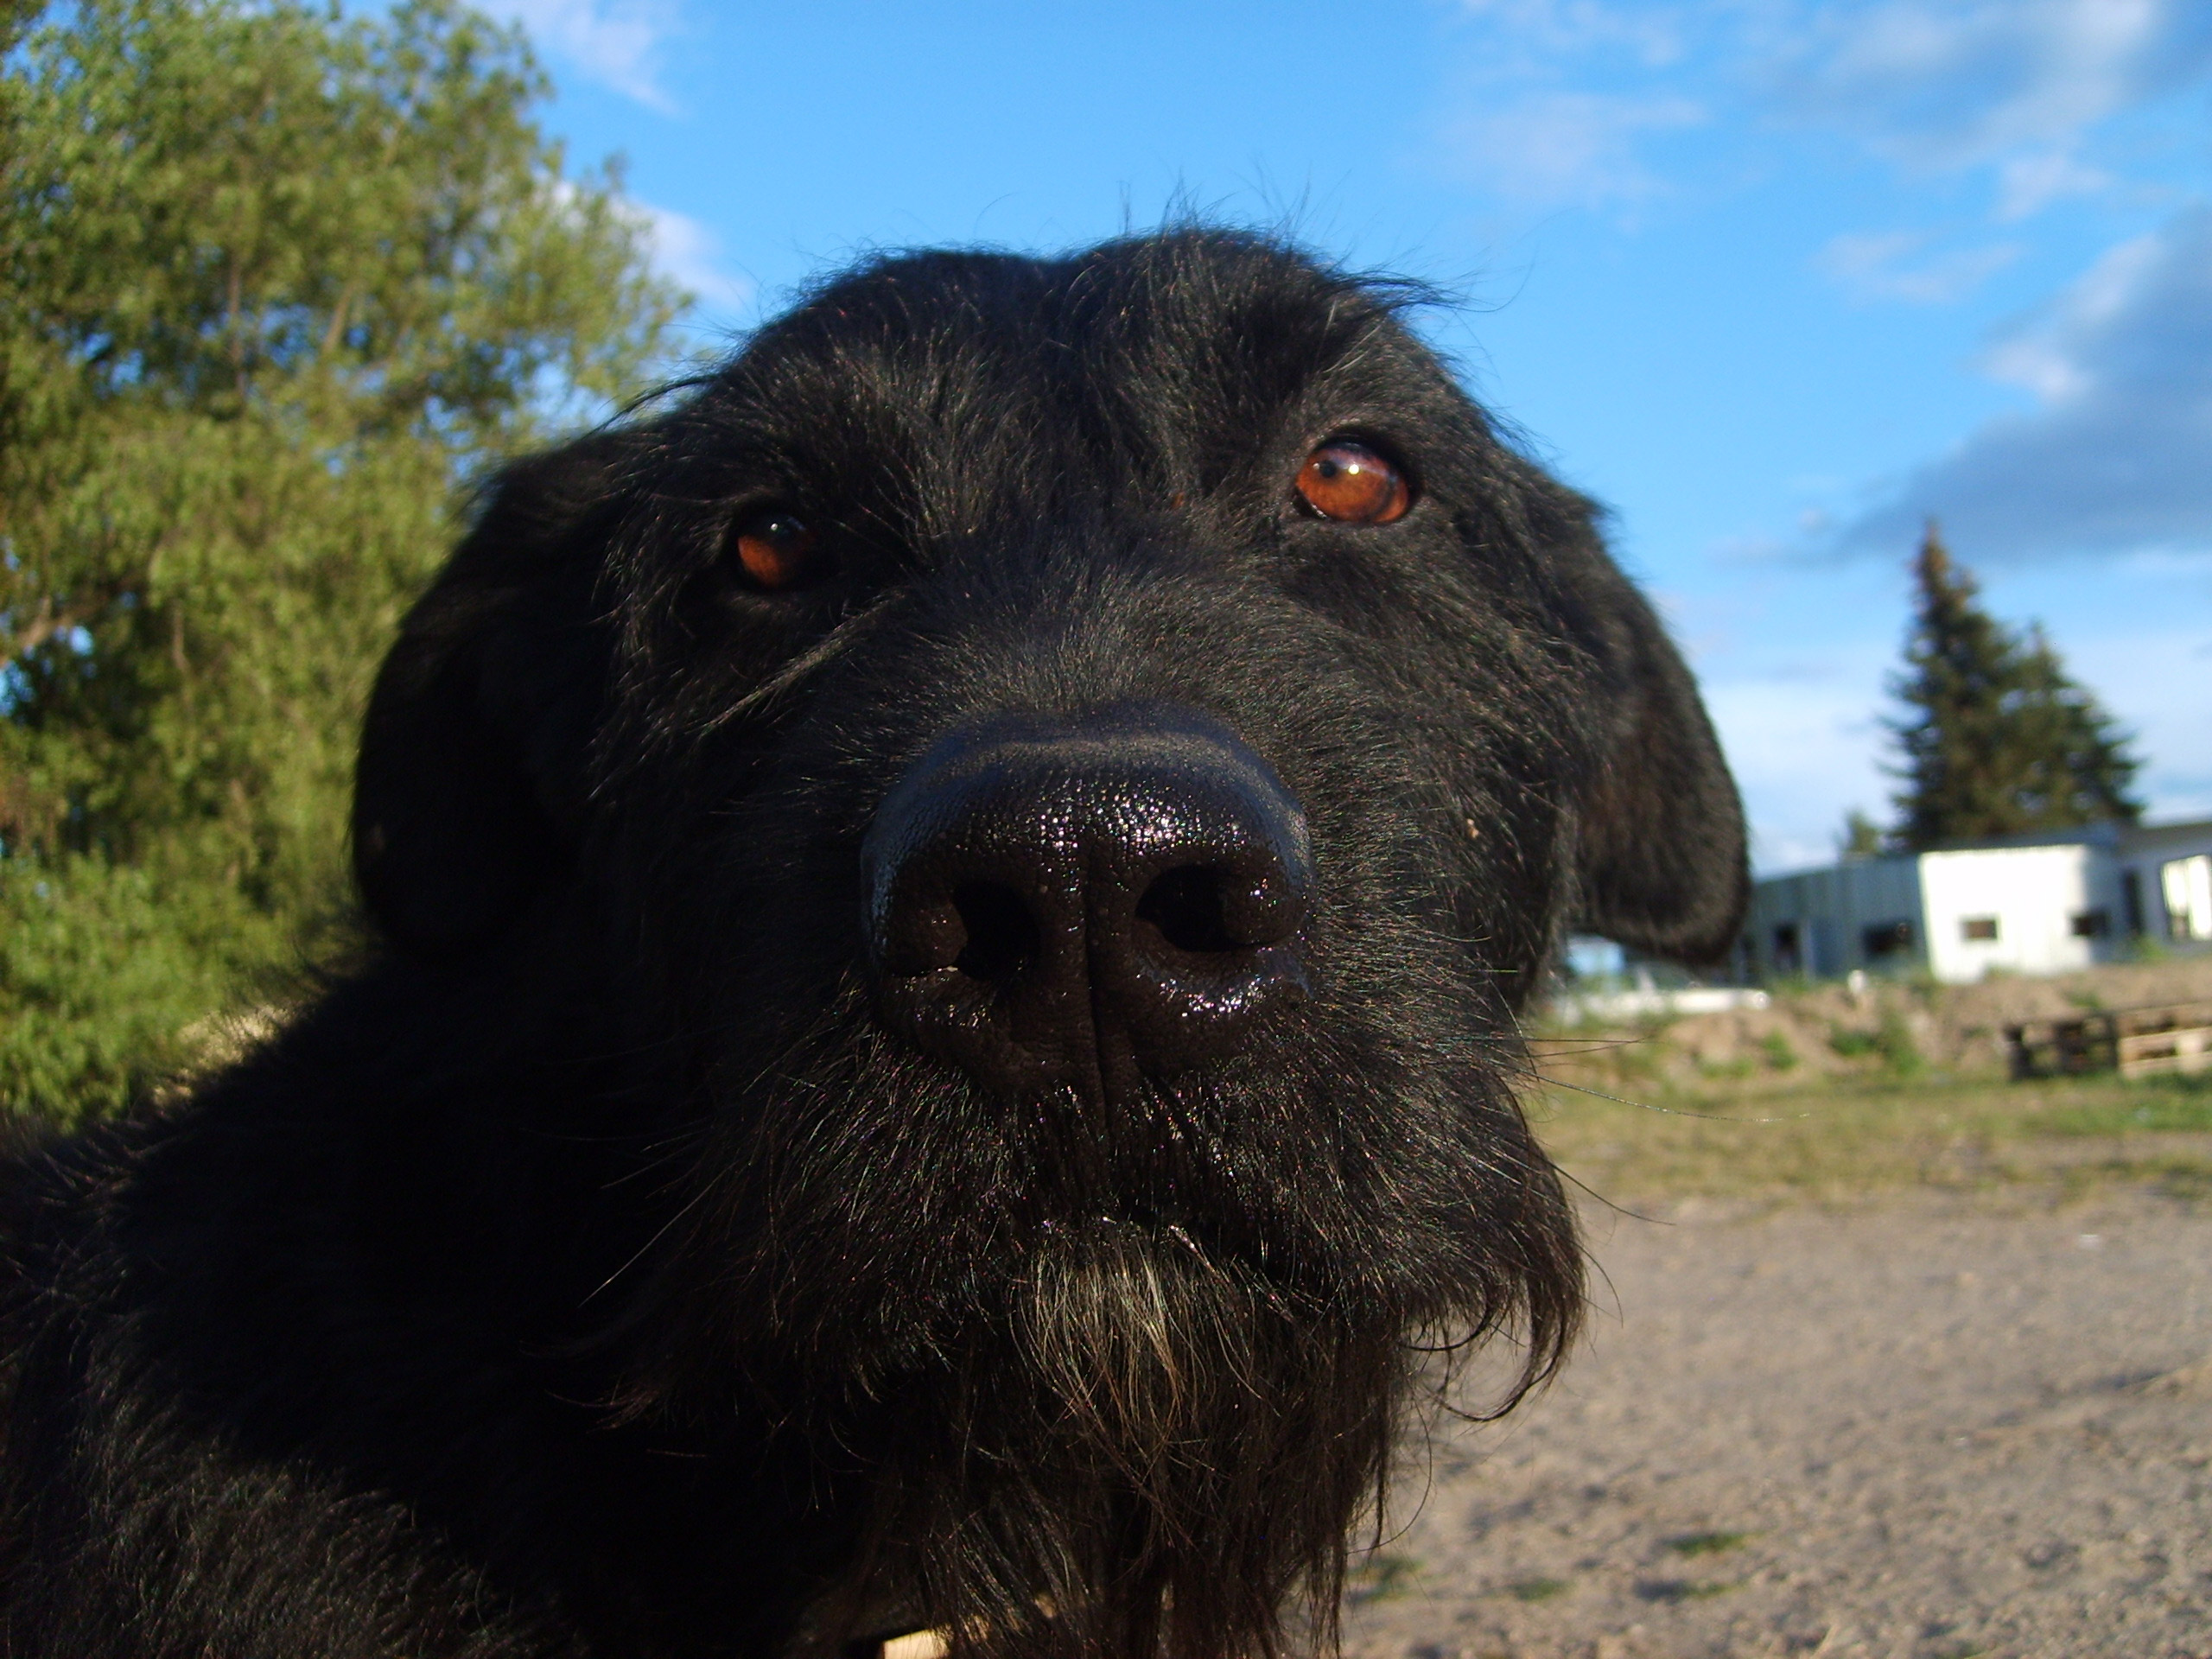 Free Image: Black dog's face | Libreshot Public Domain Photos